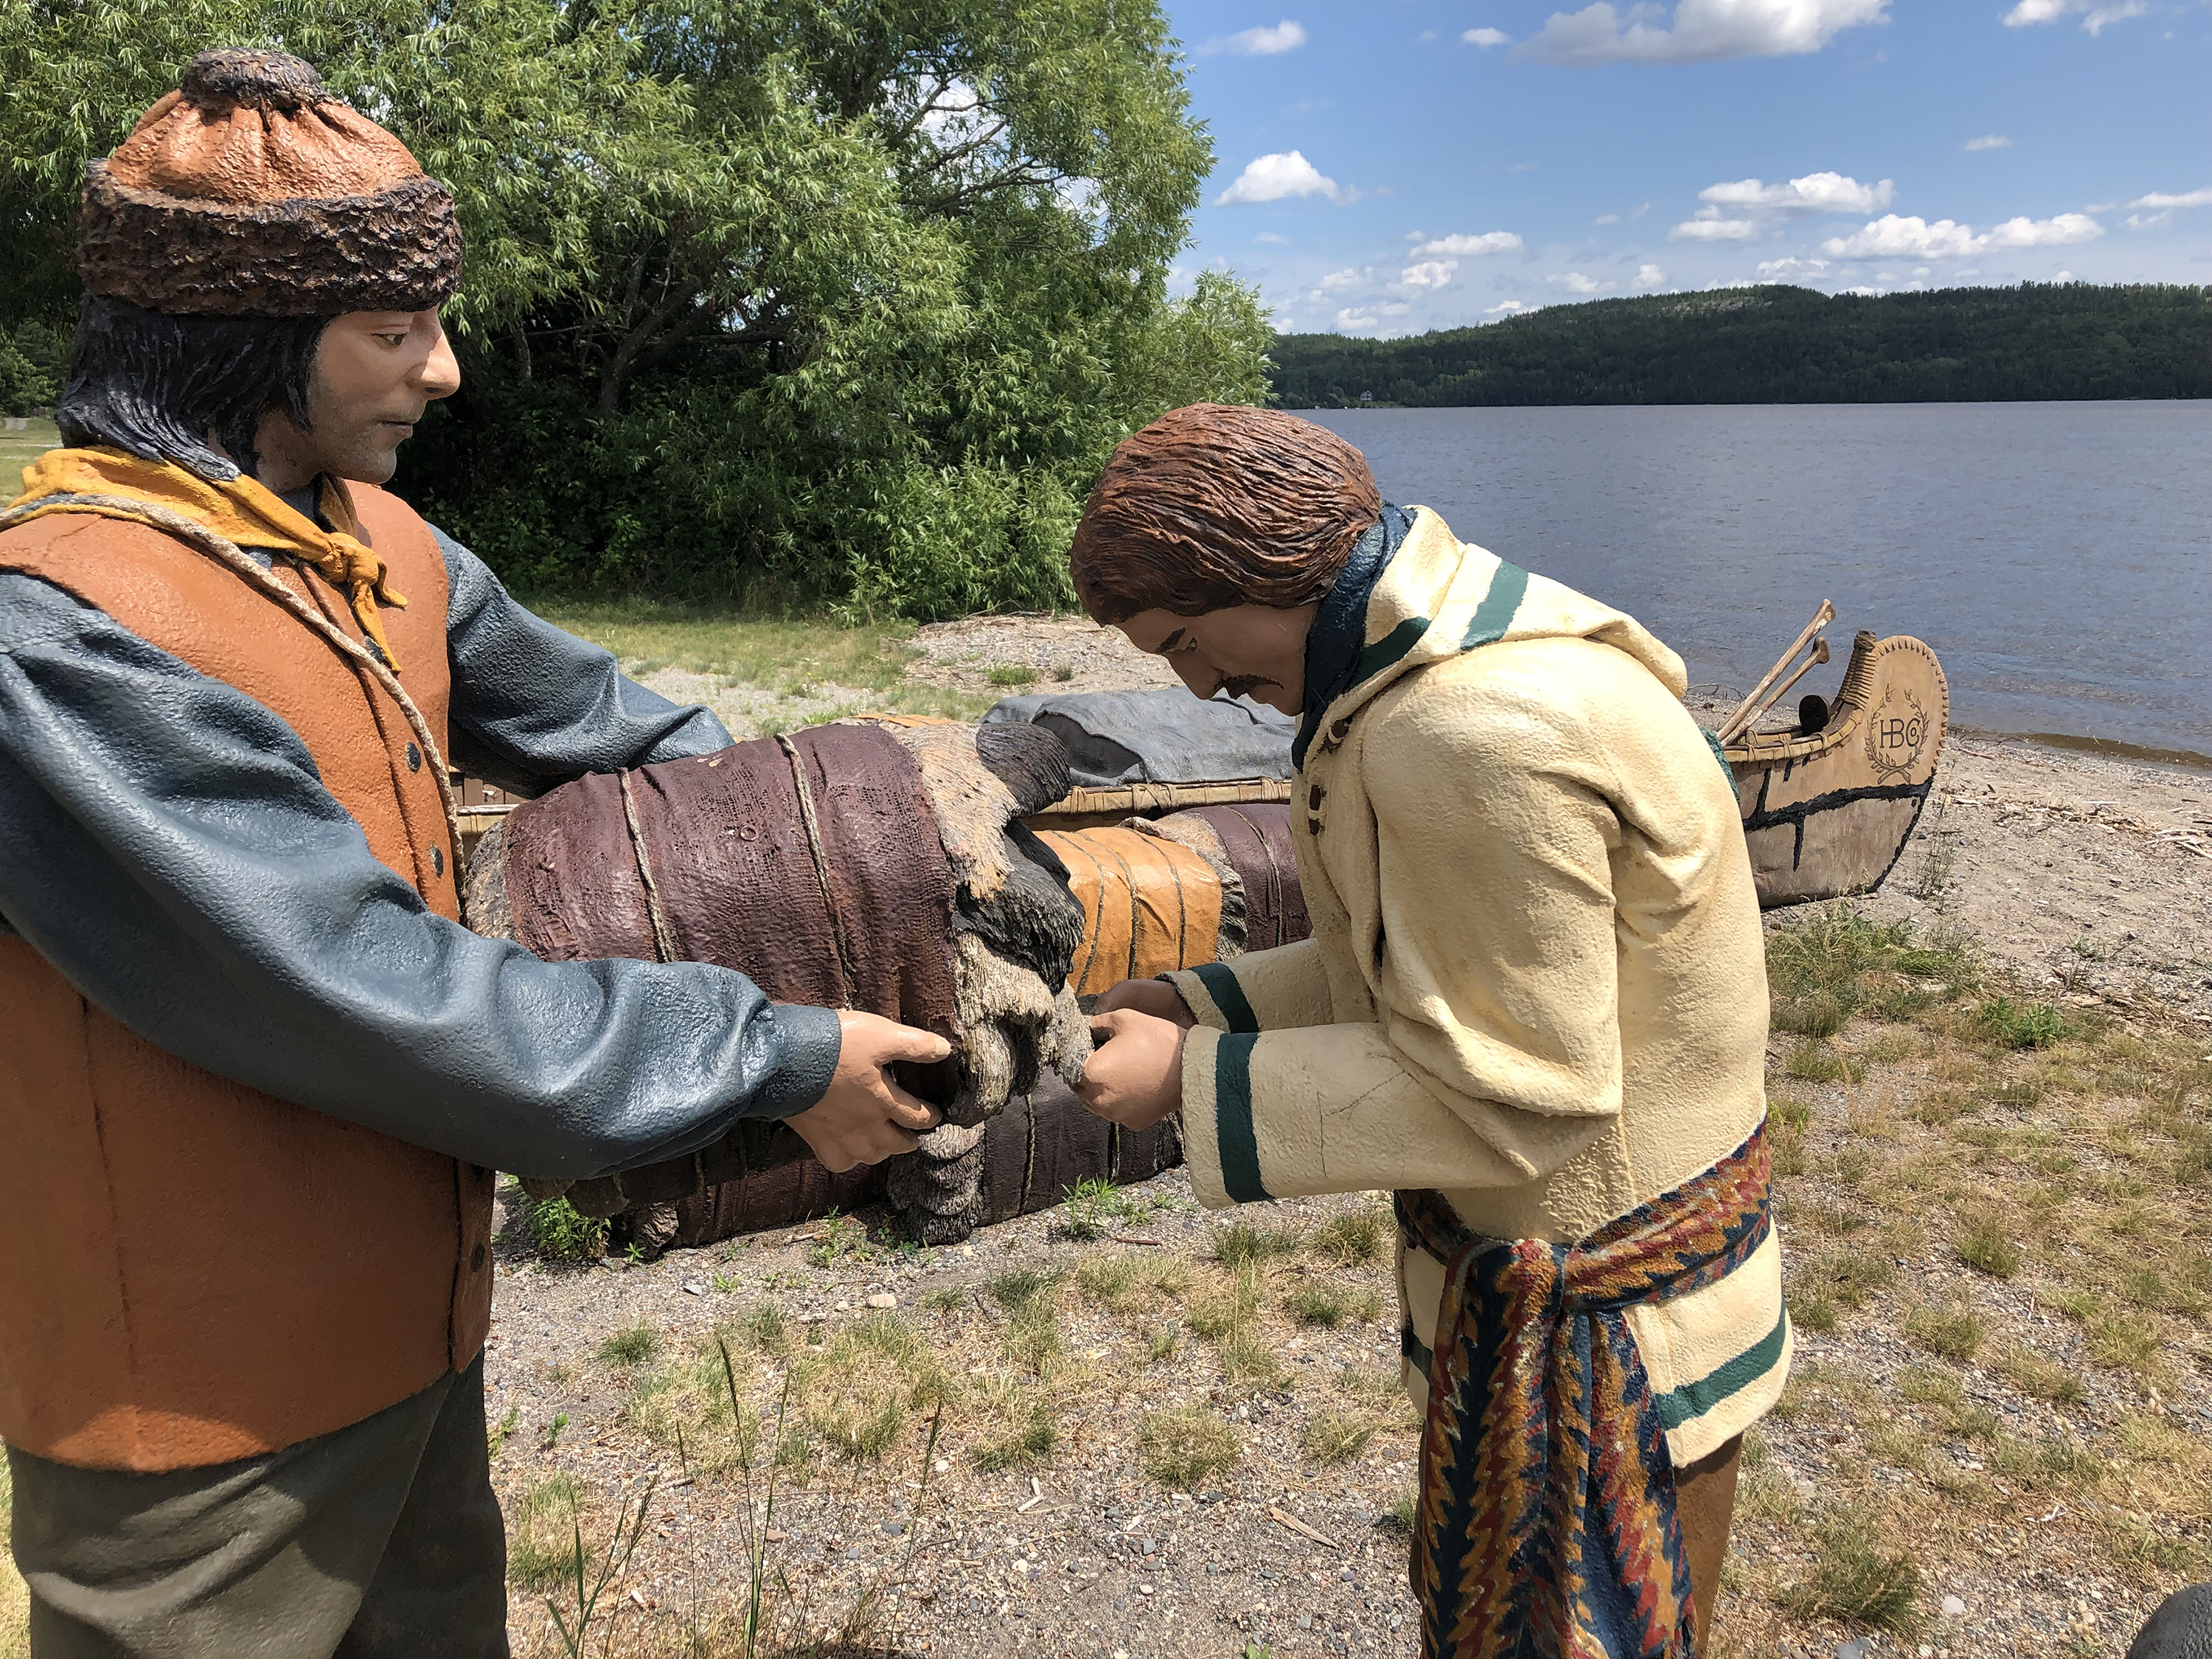 Reproduction d'une scène de chargement de fourrures dans les canots sur les bords du lac Témiscamingue, au Fort Témiscamingue, en Abitibi-Témiscamingue.